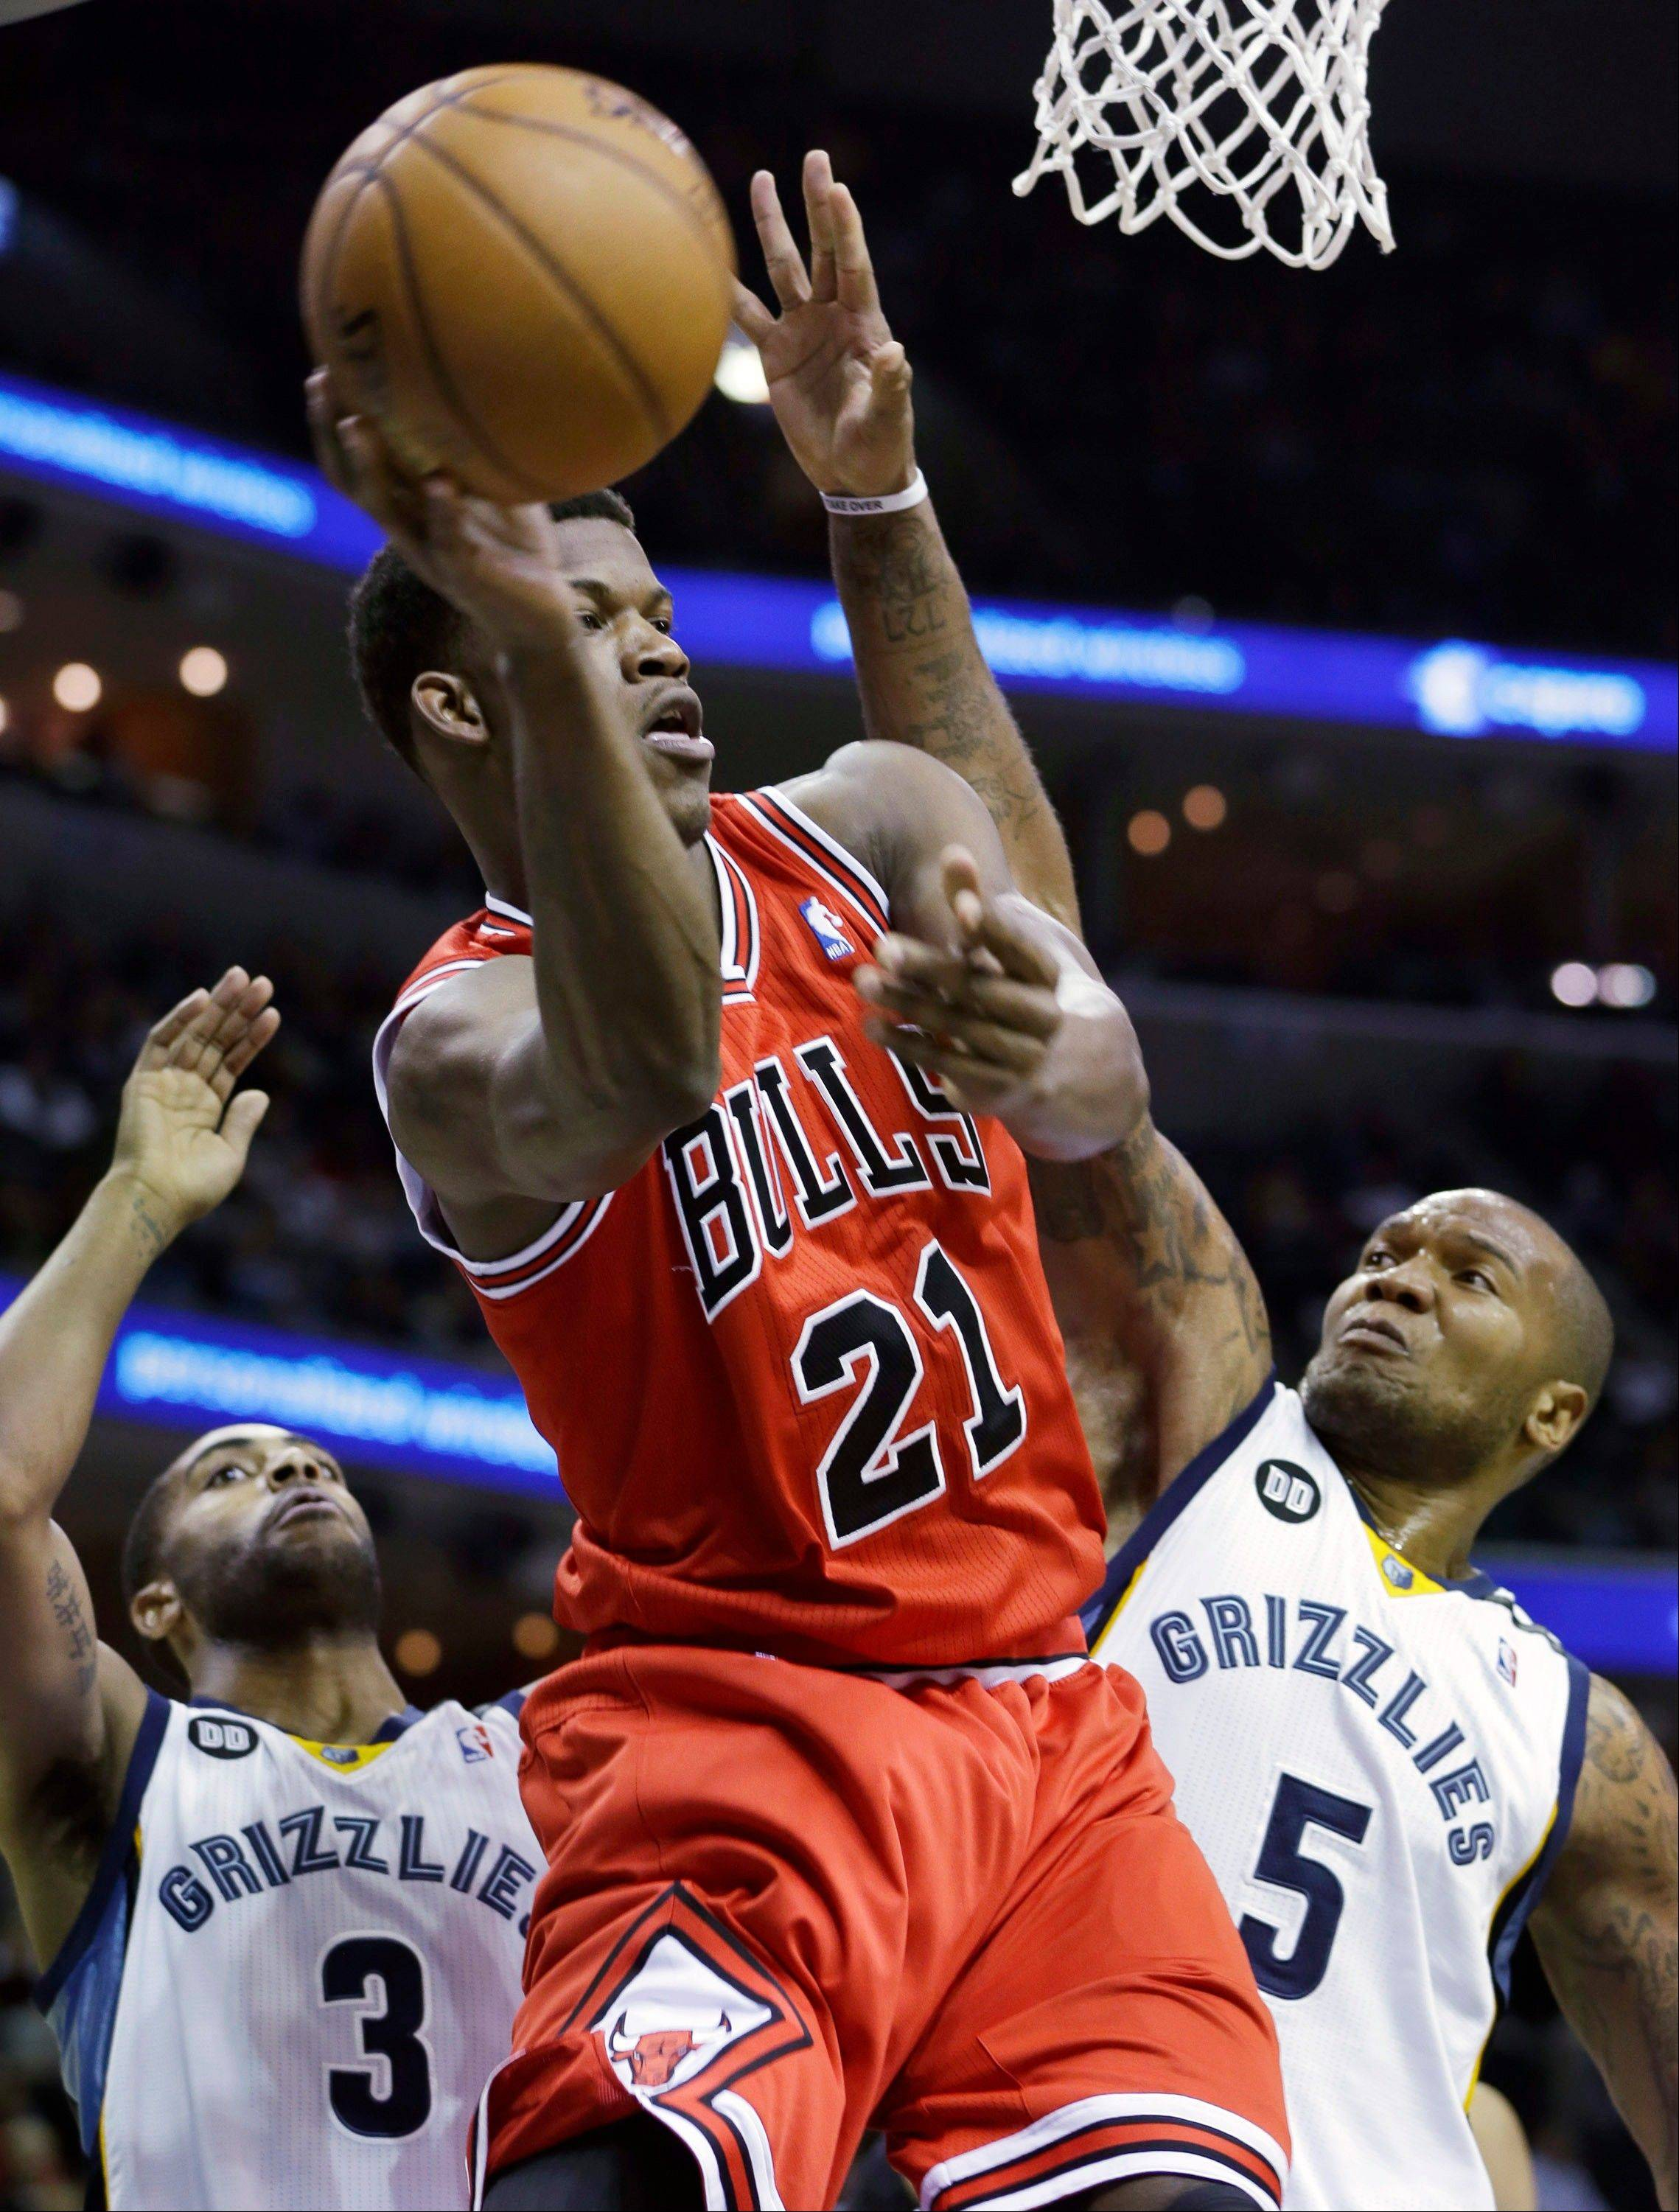 Chicago Bulls' Jimmy Butler (21) gets an offensive rebound next to Memphis Grizzlies' Wayne Ellington (3) and Marreese Speights (5) during first half of an NBA basketball game Monday night in Memphis, Tenn. The Bulls would go on to lose 80-71.